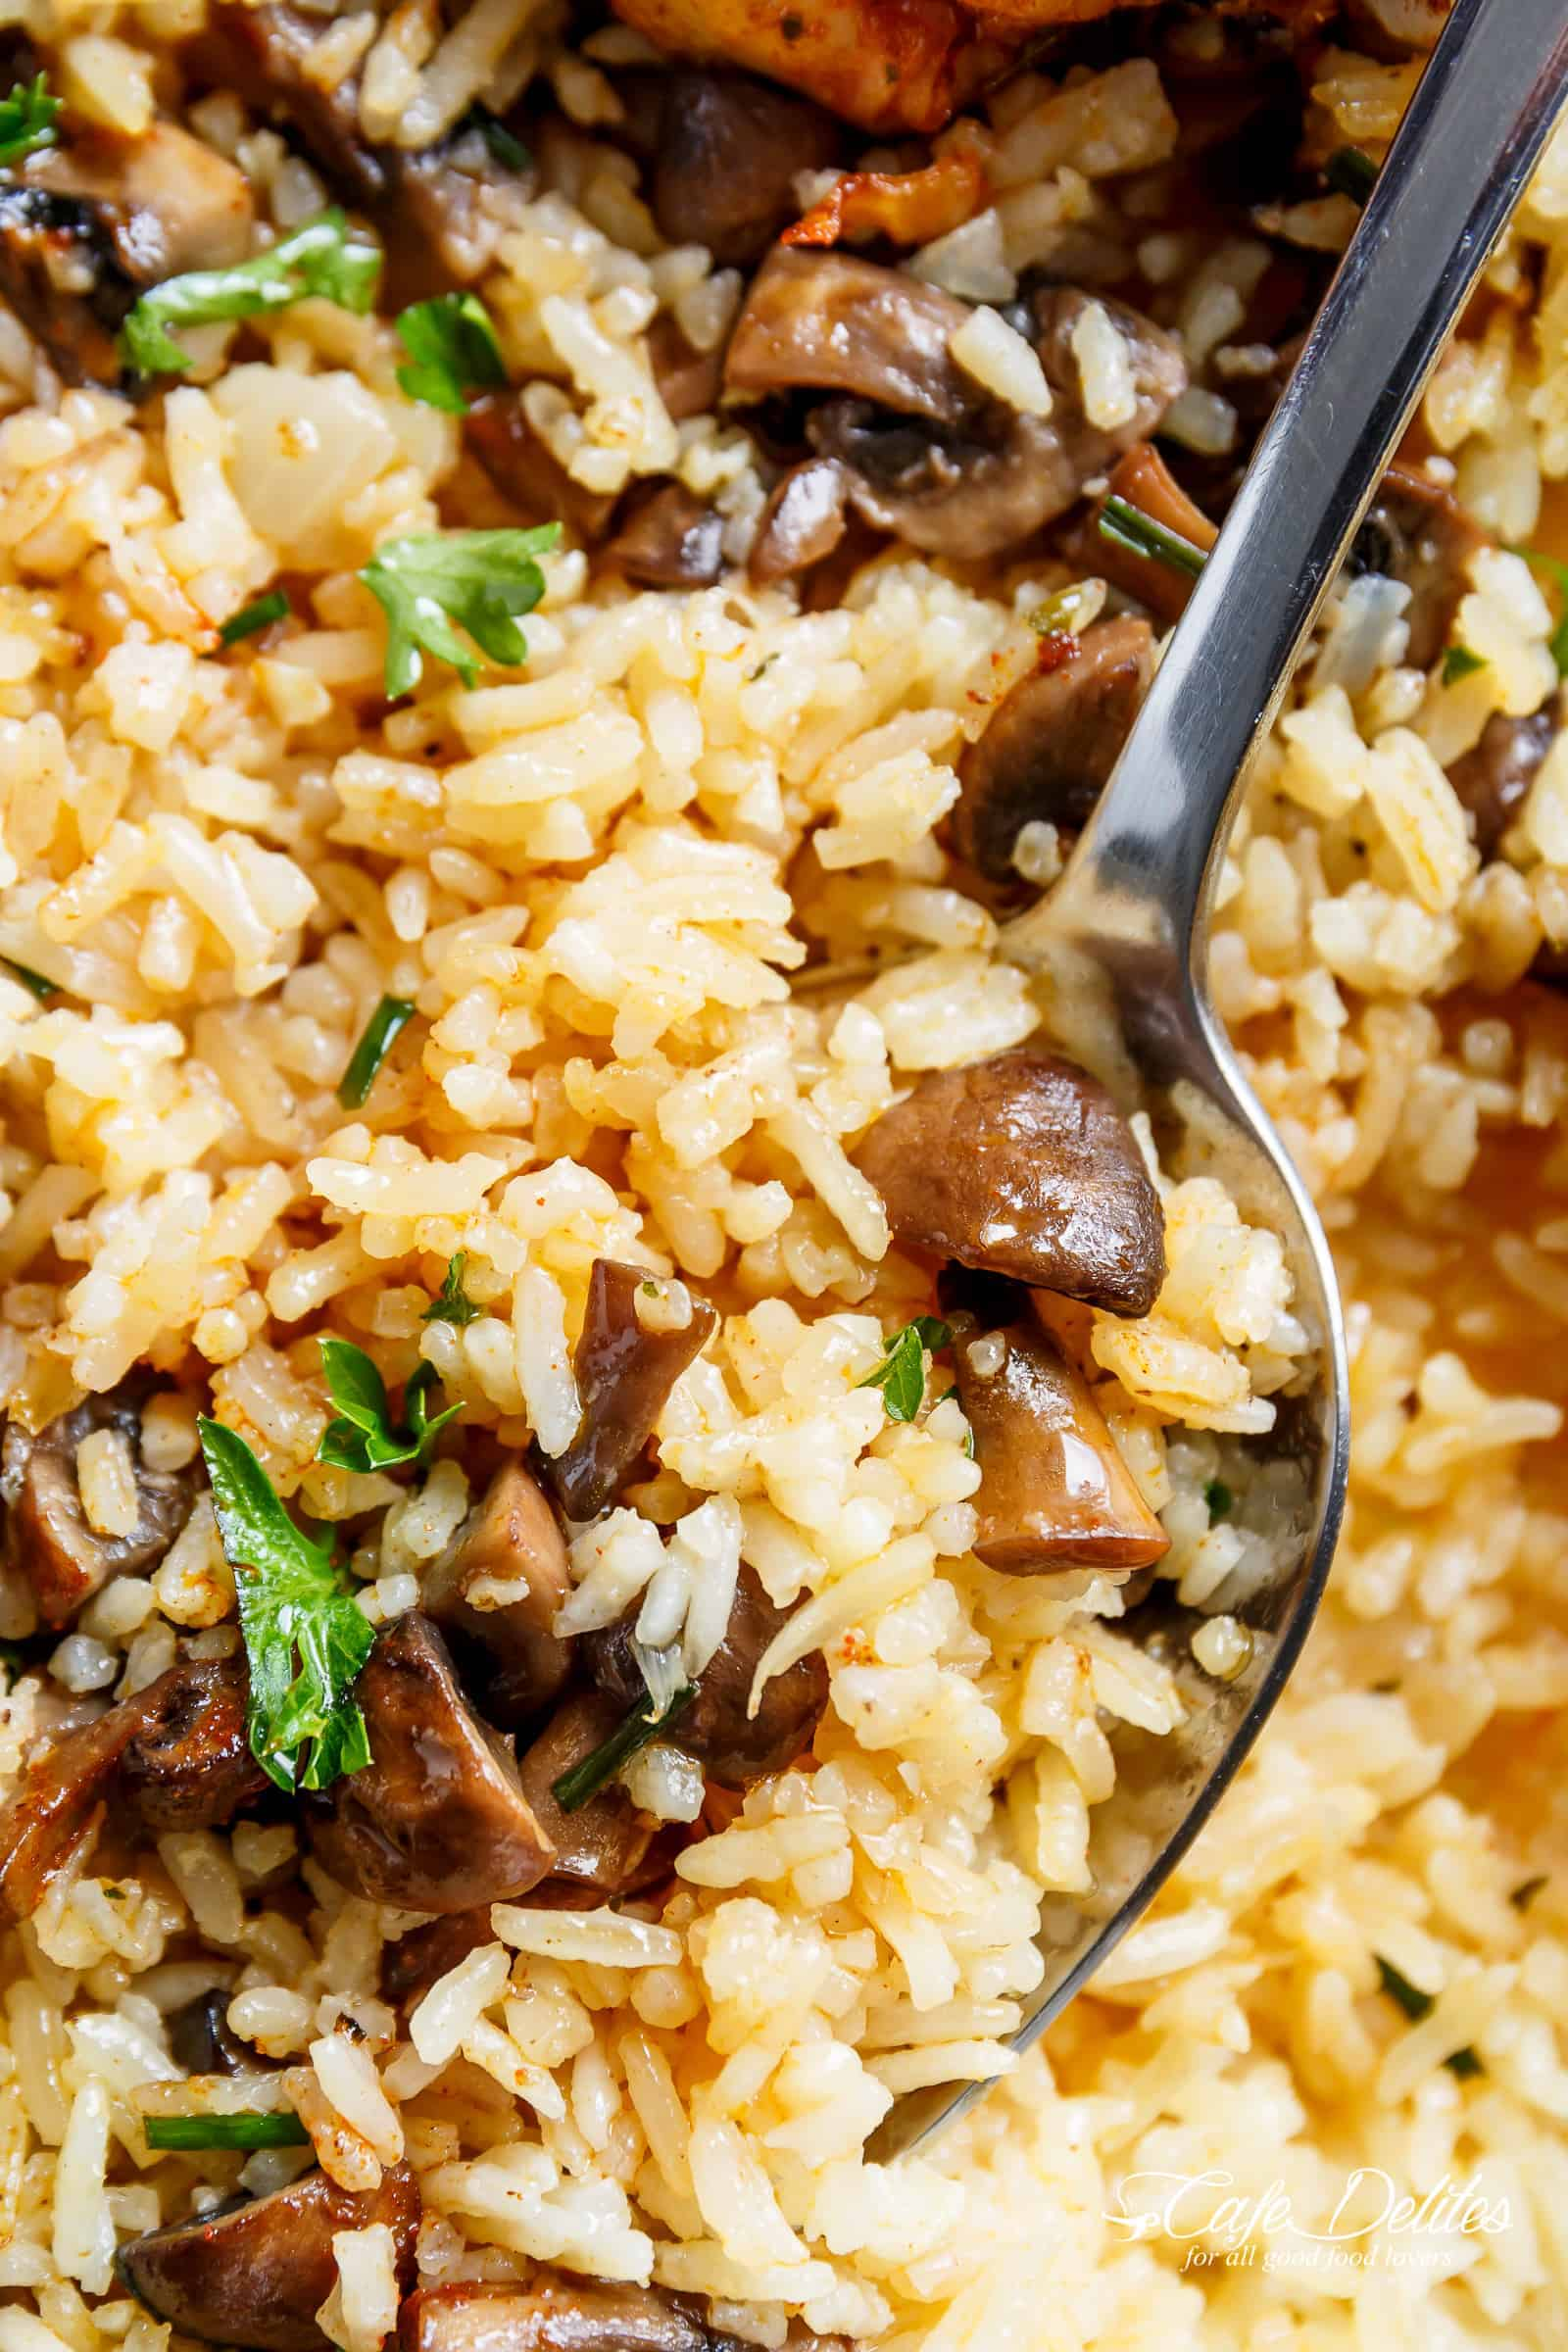 Mushroom Rice For Oven Baked Chicken and Rice | cafedelites.com